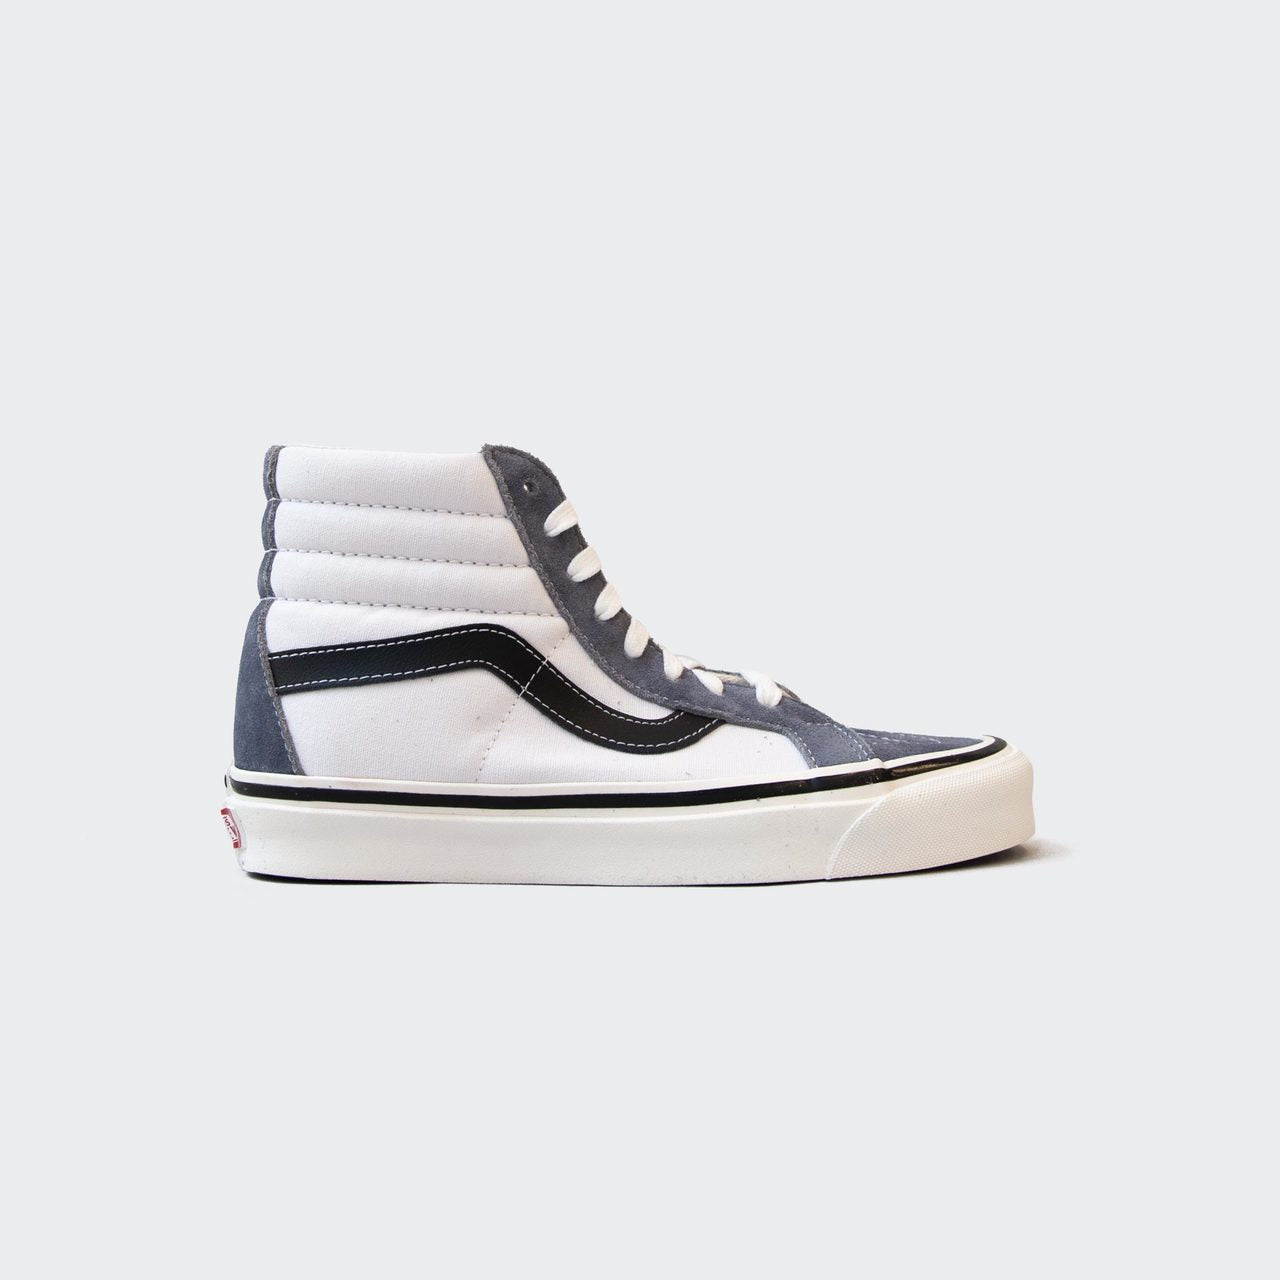 Vans - Anaheim Factory Sk8-Hi 38 DX, available at LCD